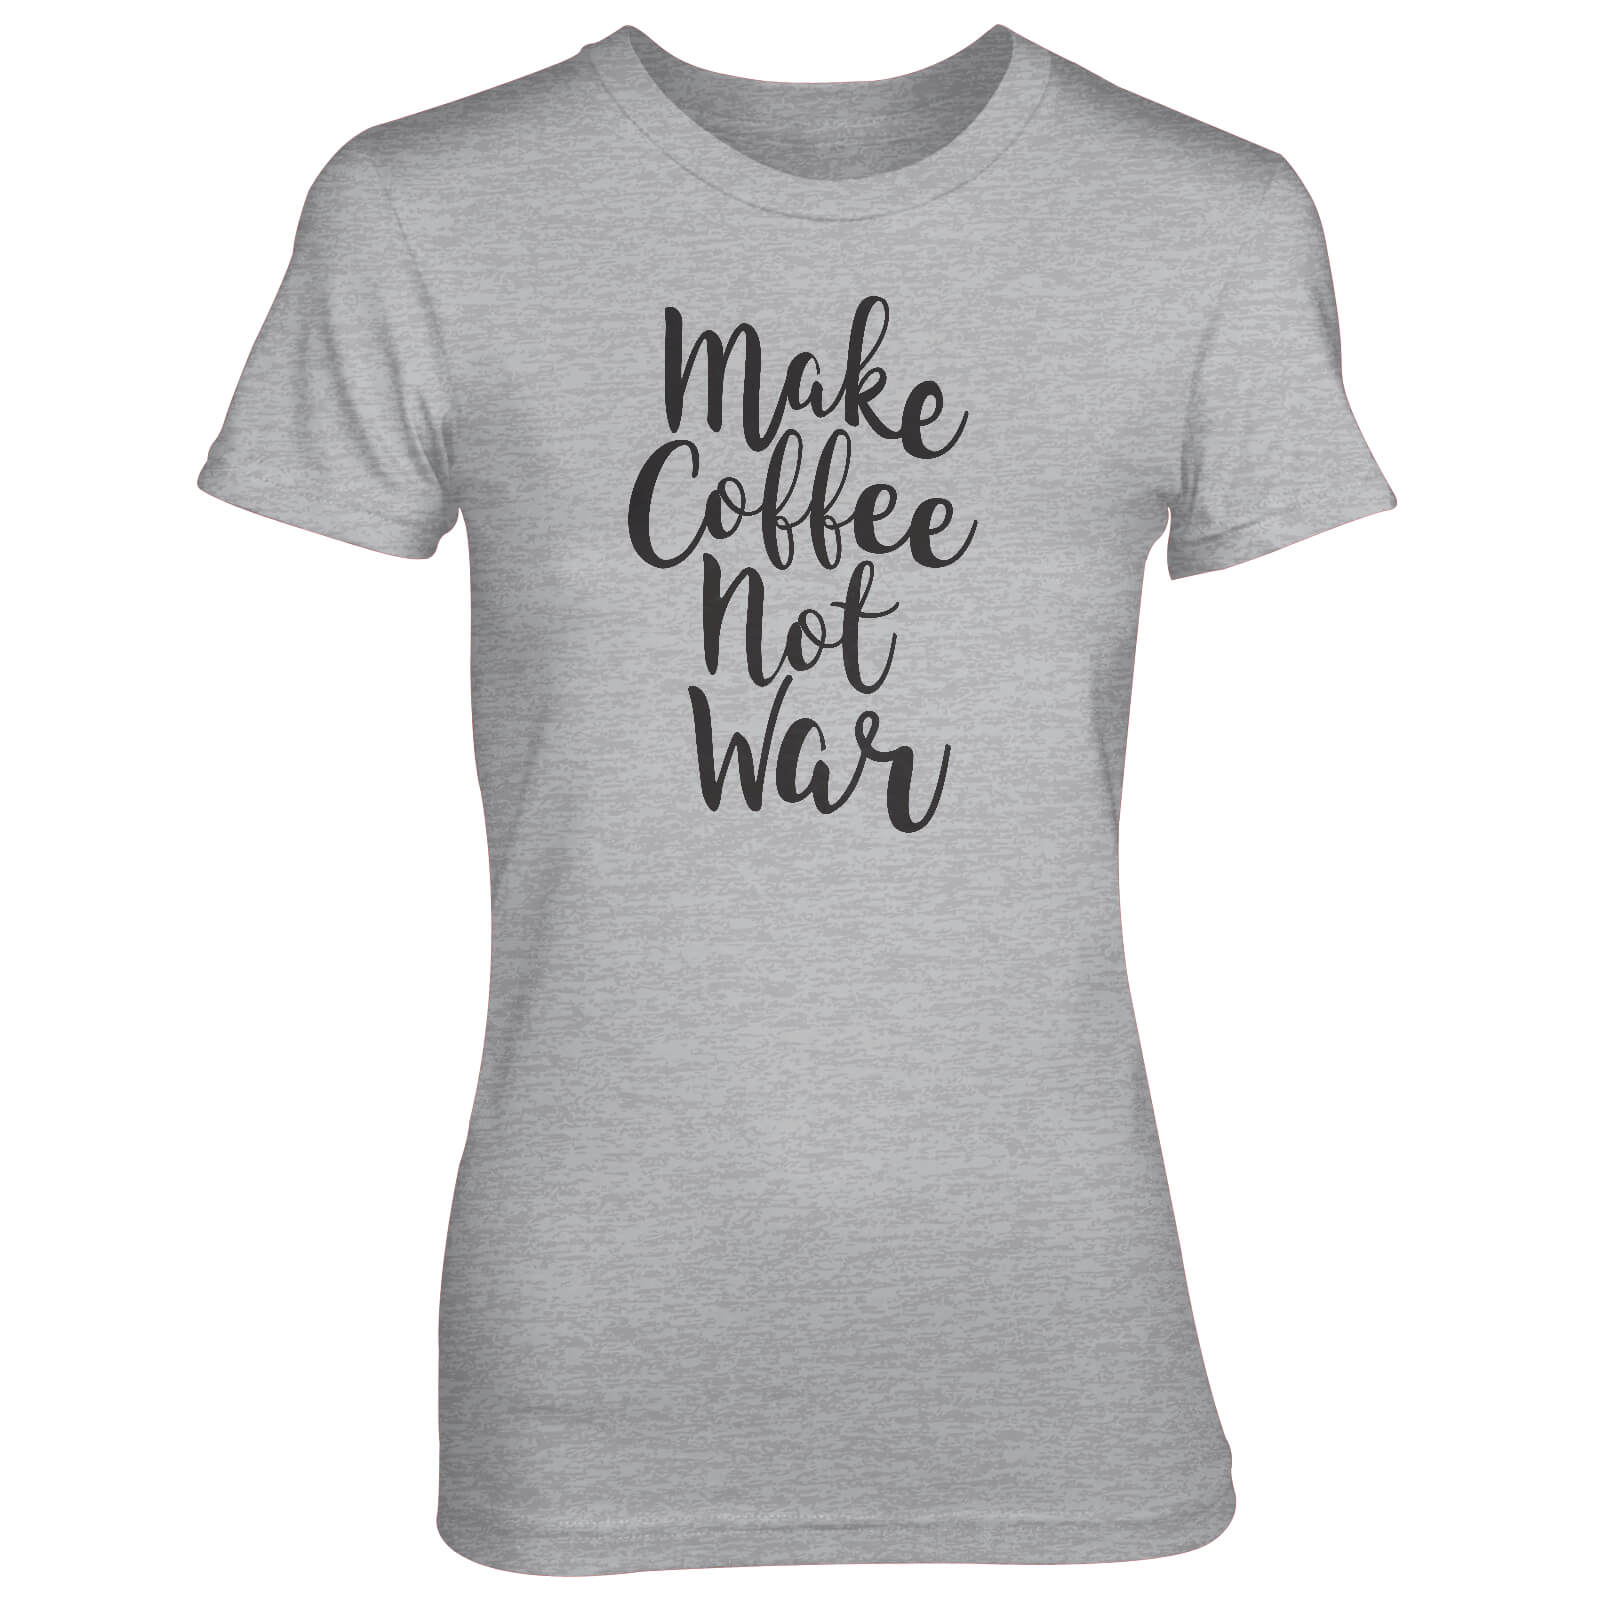 Make Coffee Not War Women